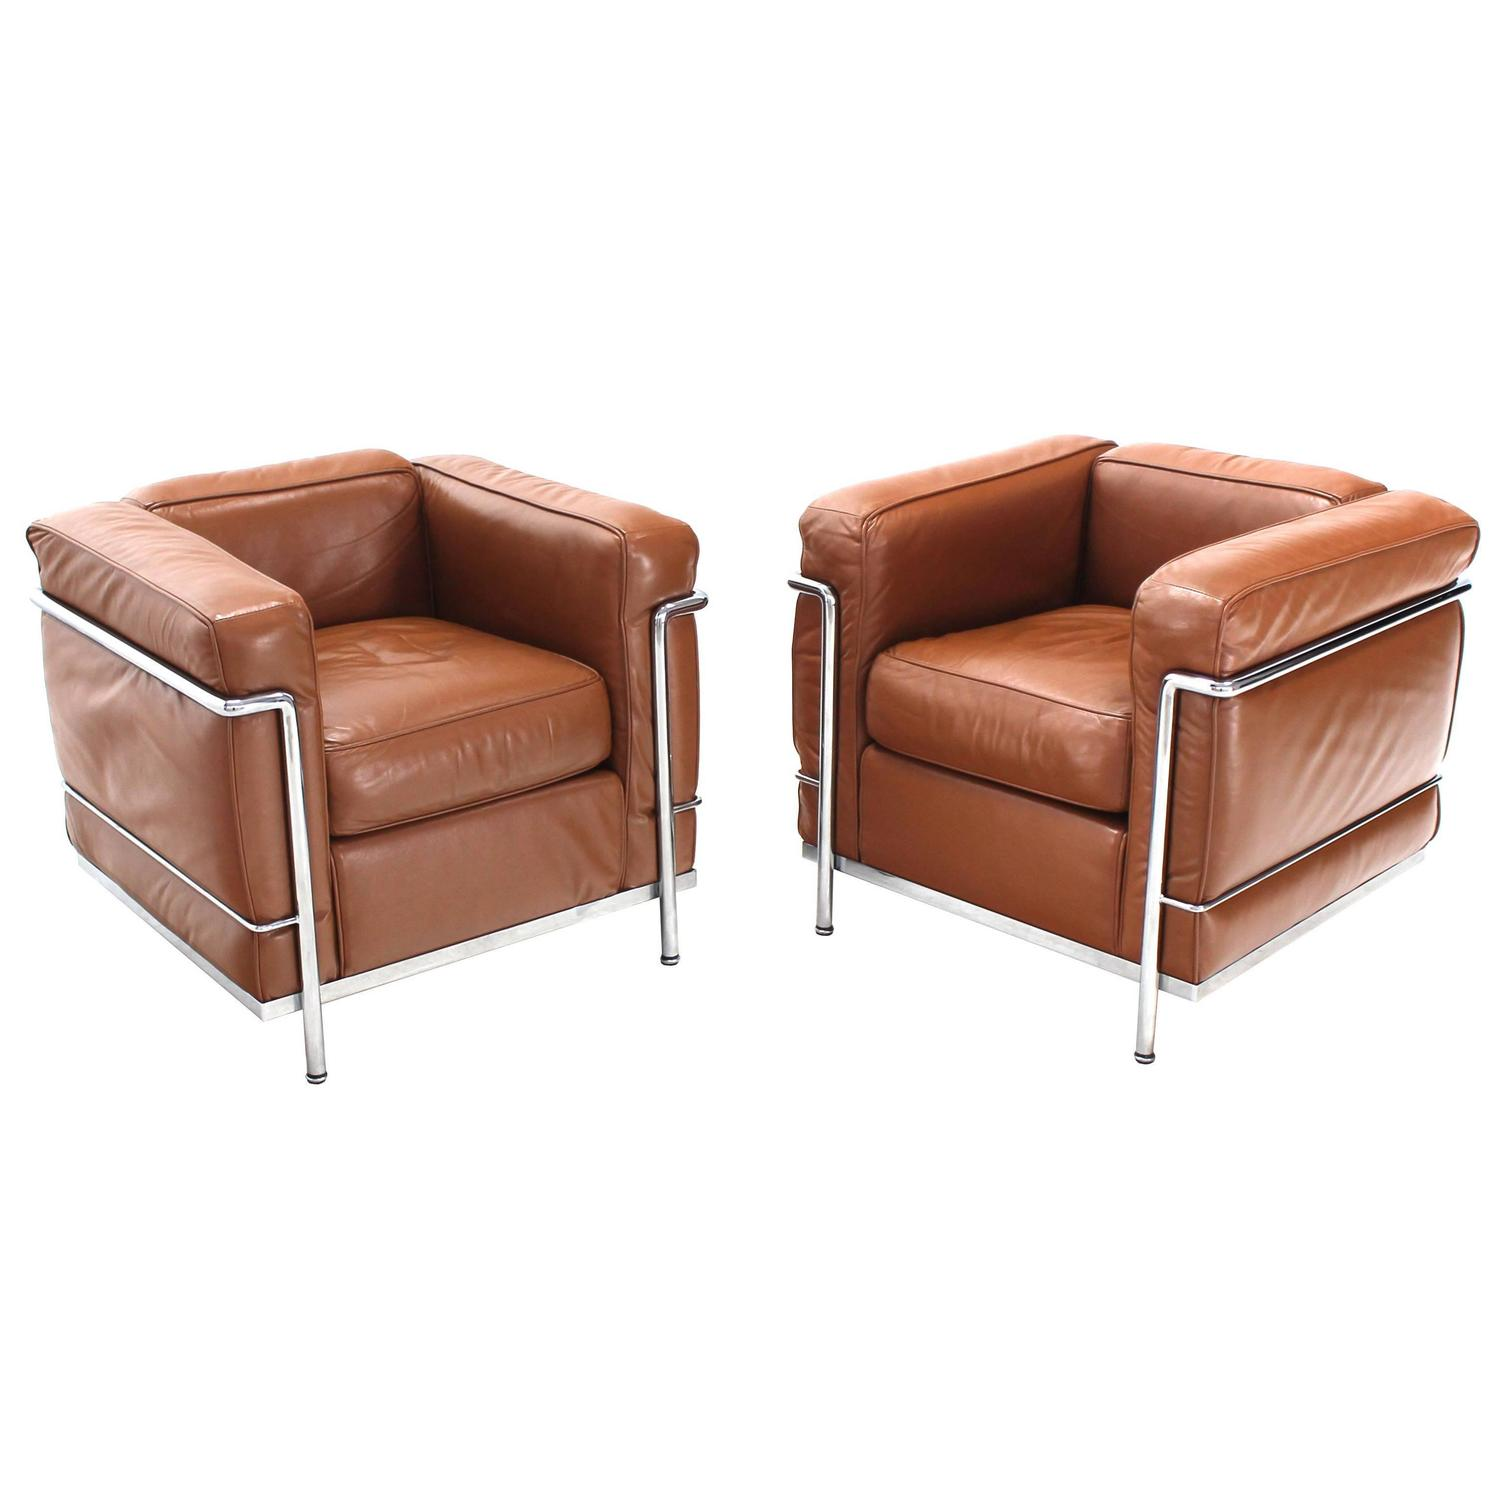 Cassina Lounge Chairs 72 For Sale at 1stdibs